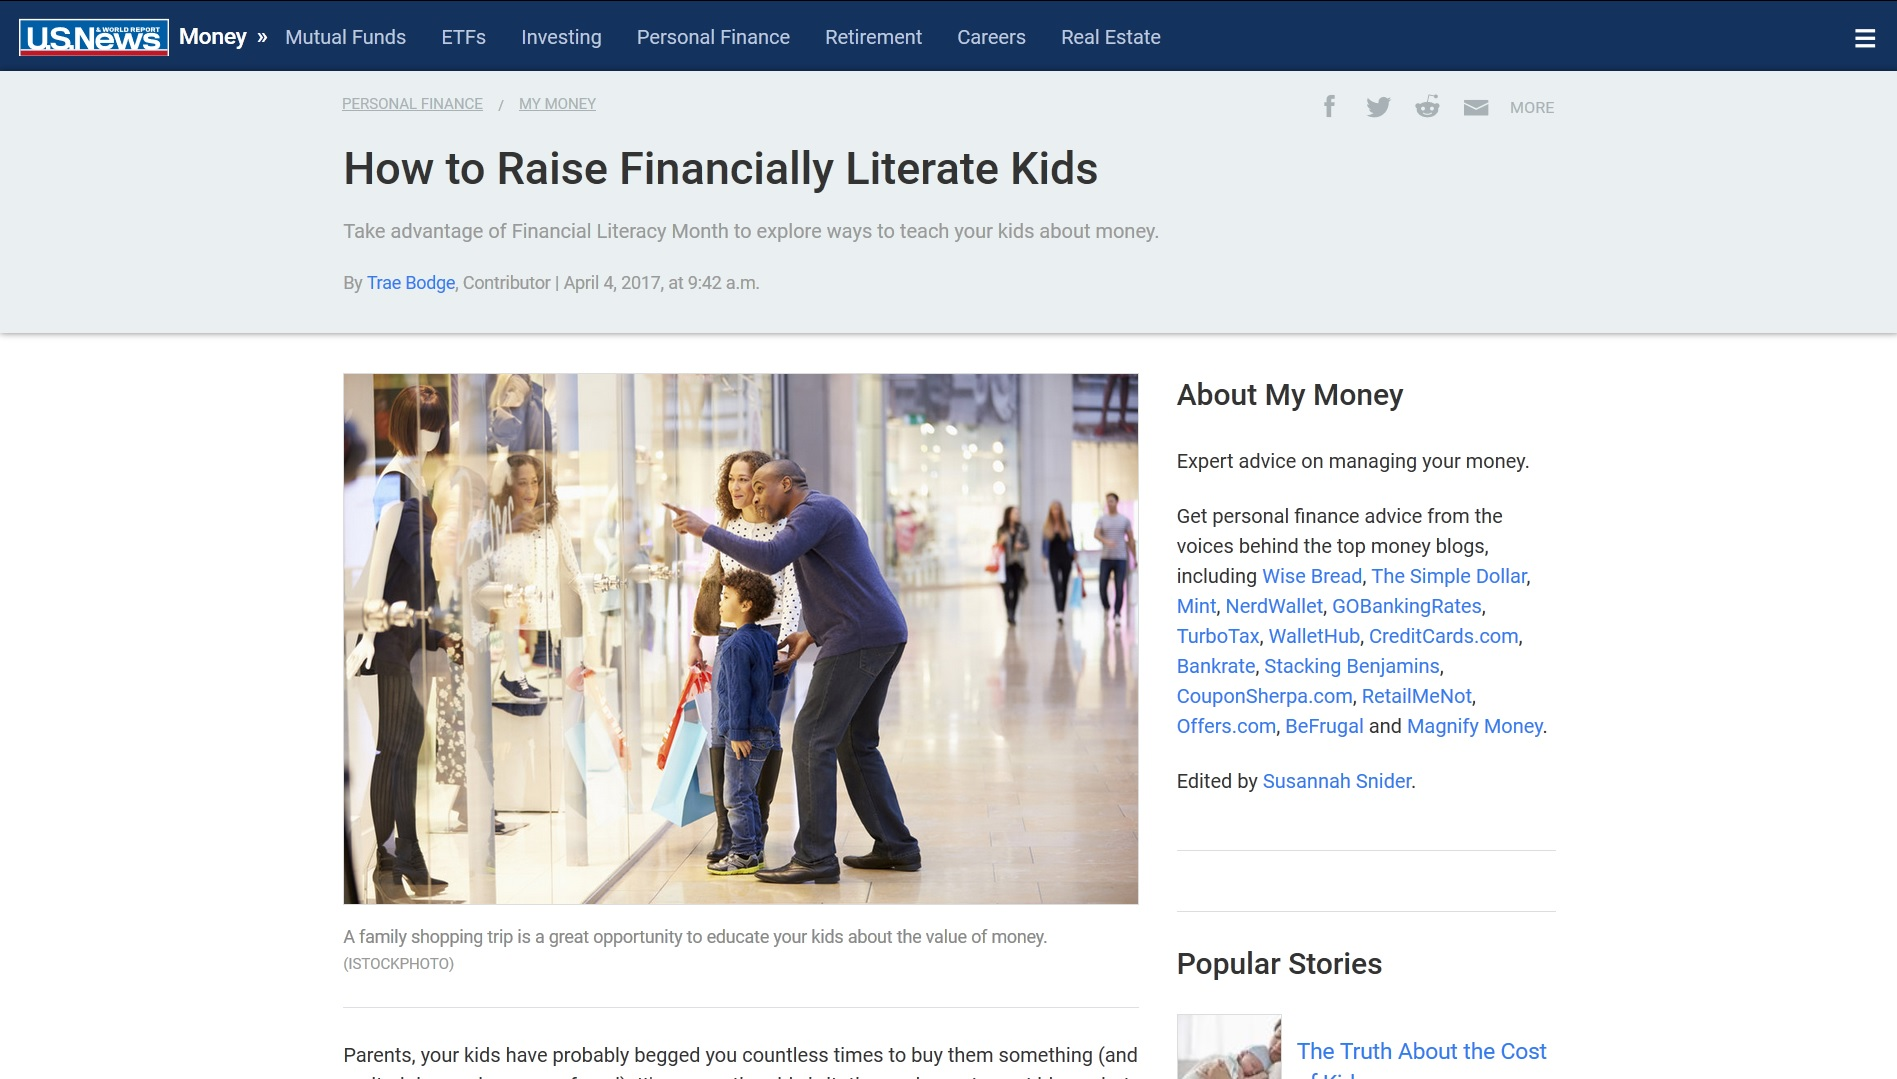 How to Raise Financially Literate Kids